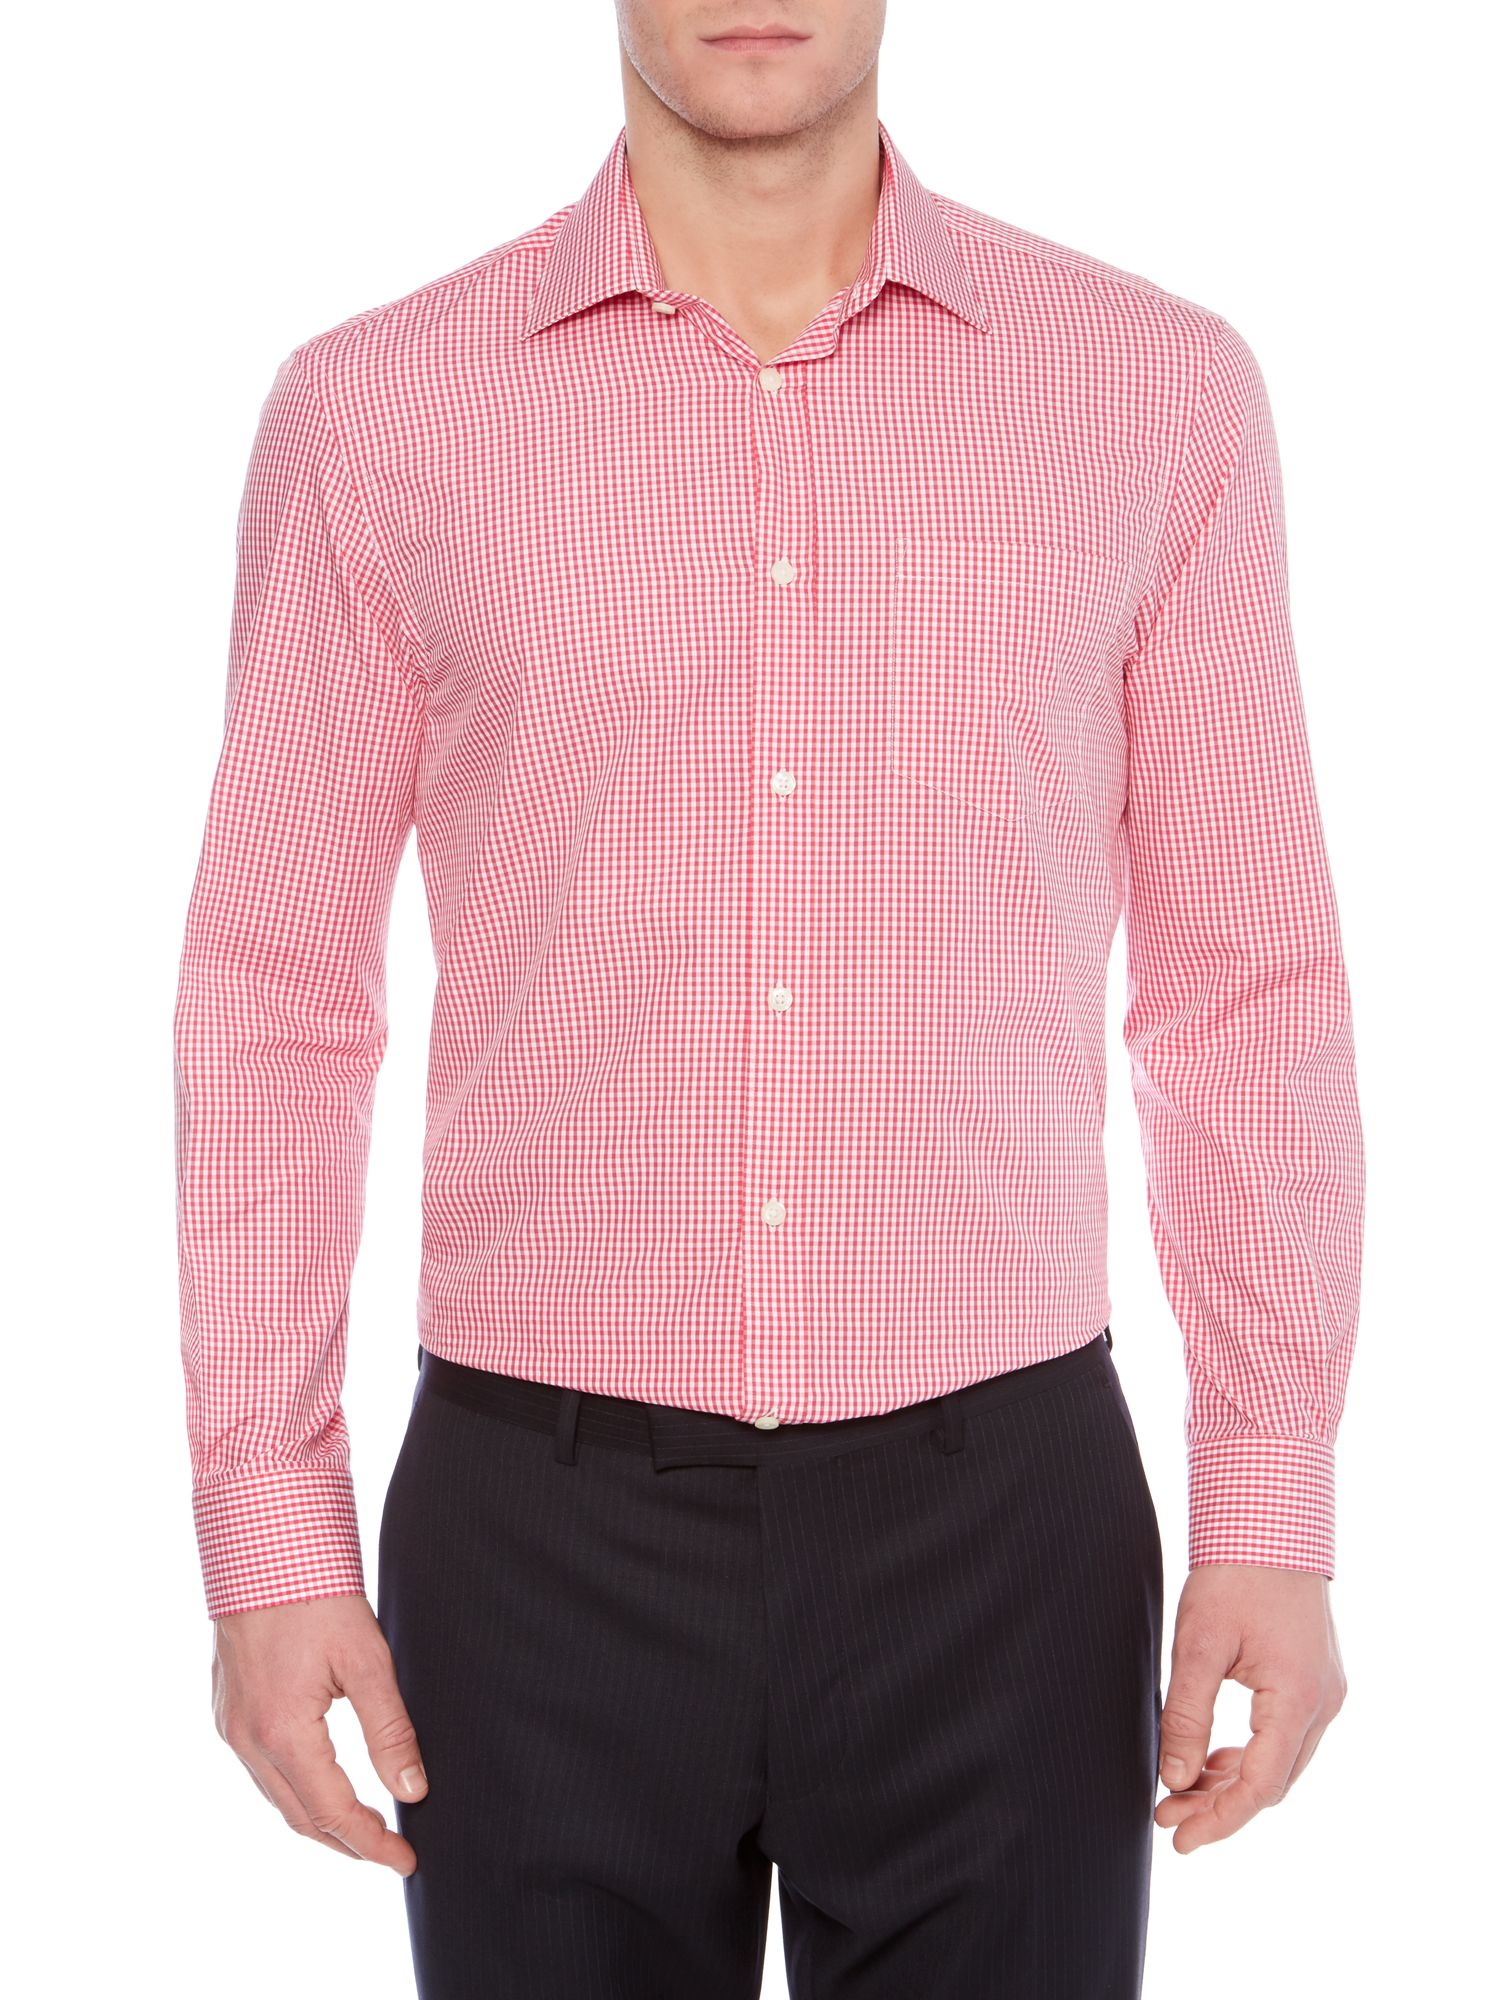 Chamber Gingham Check Shirt With Pocket